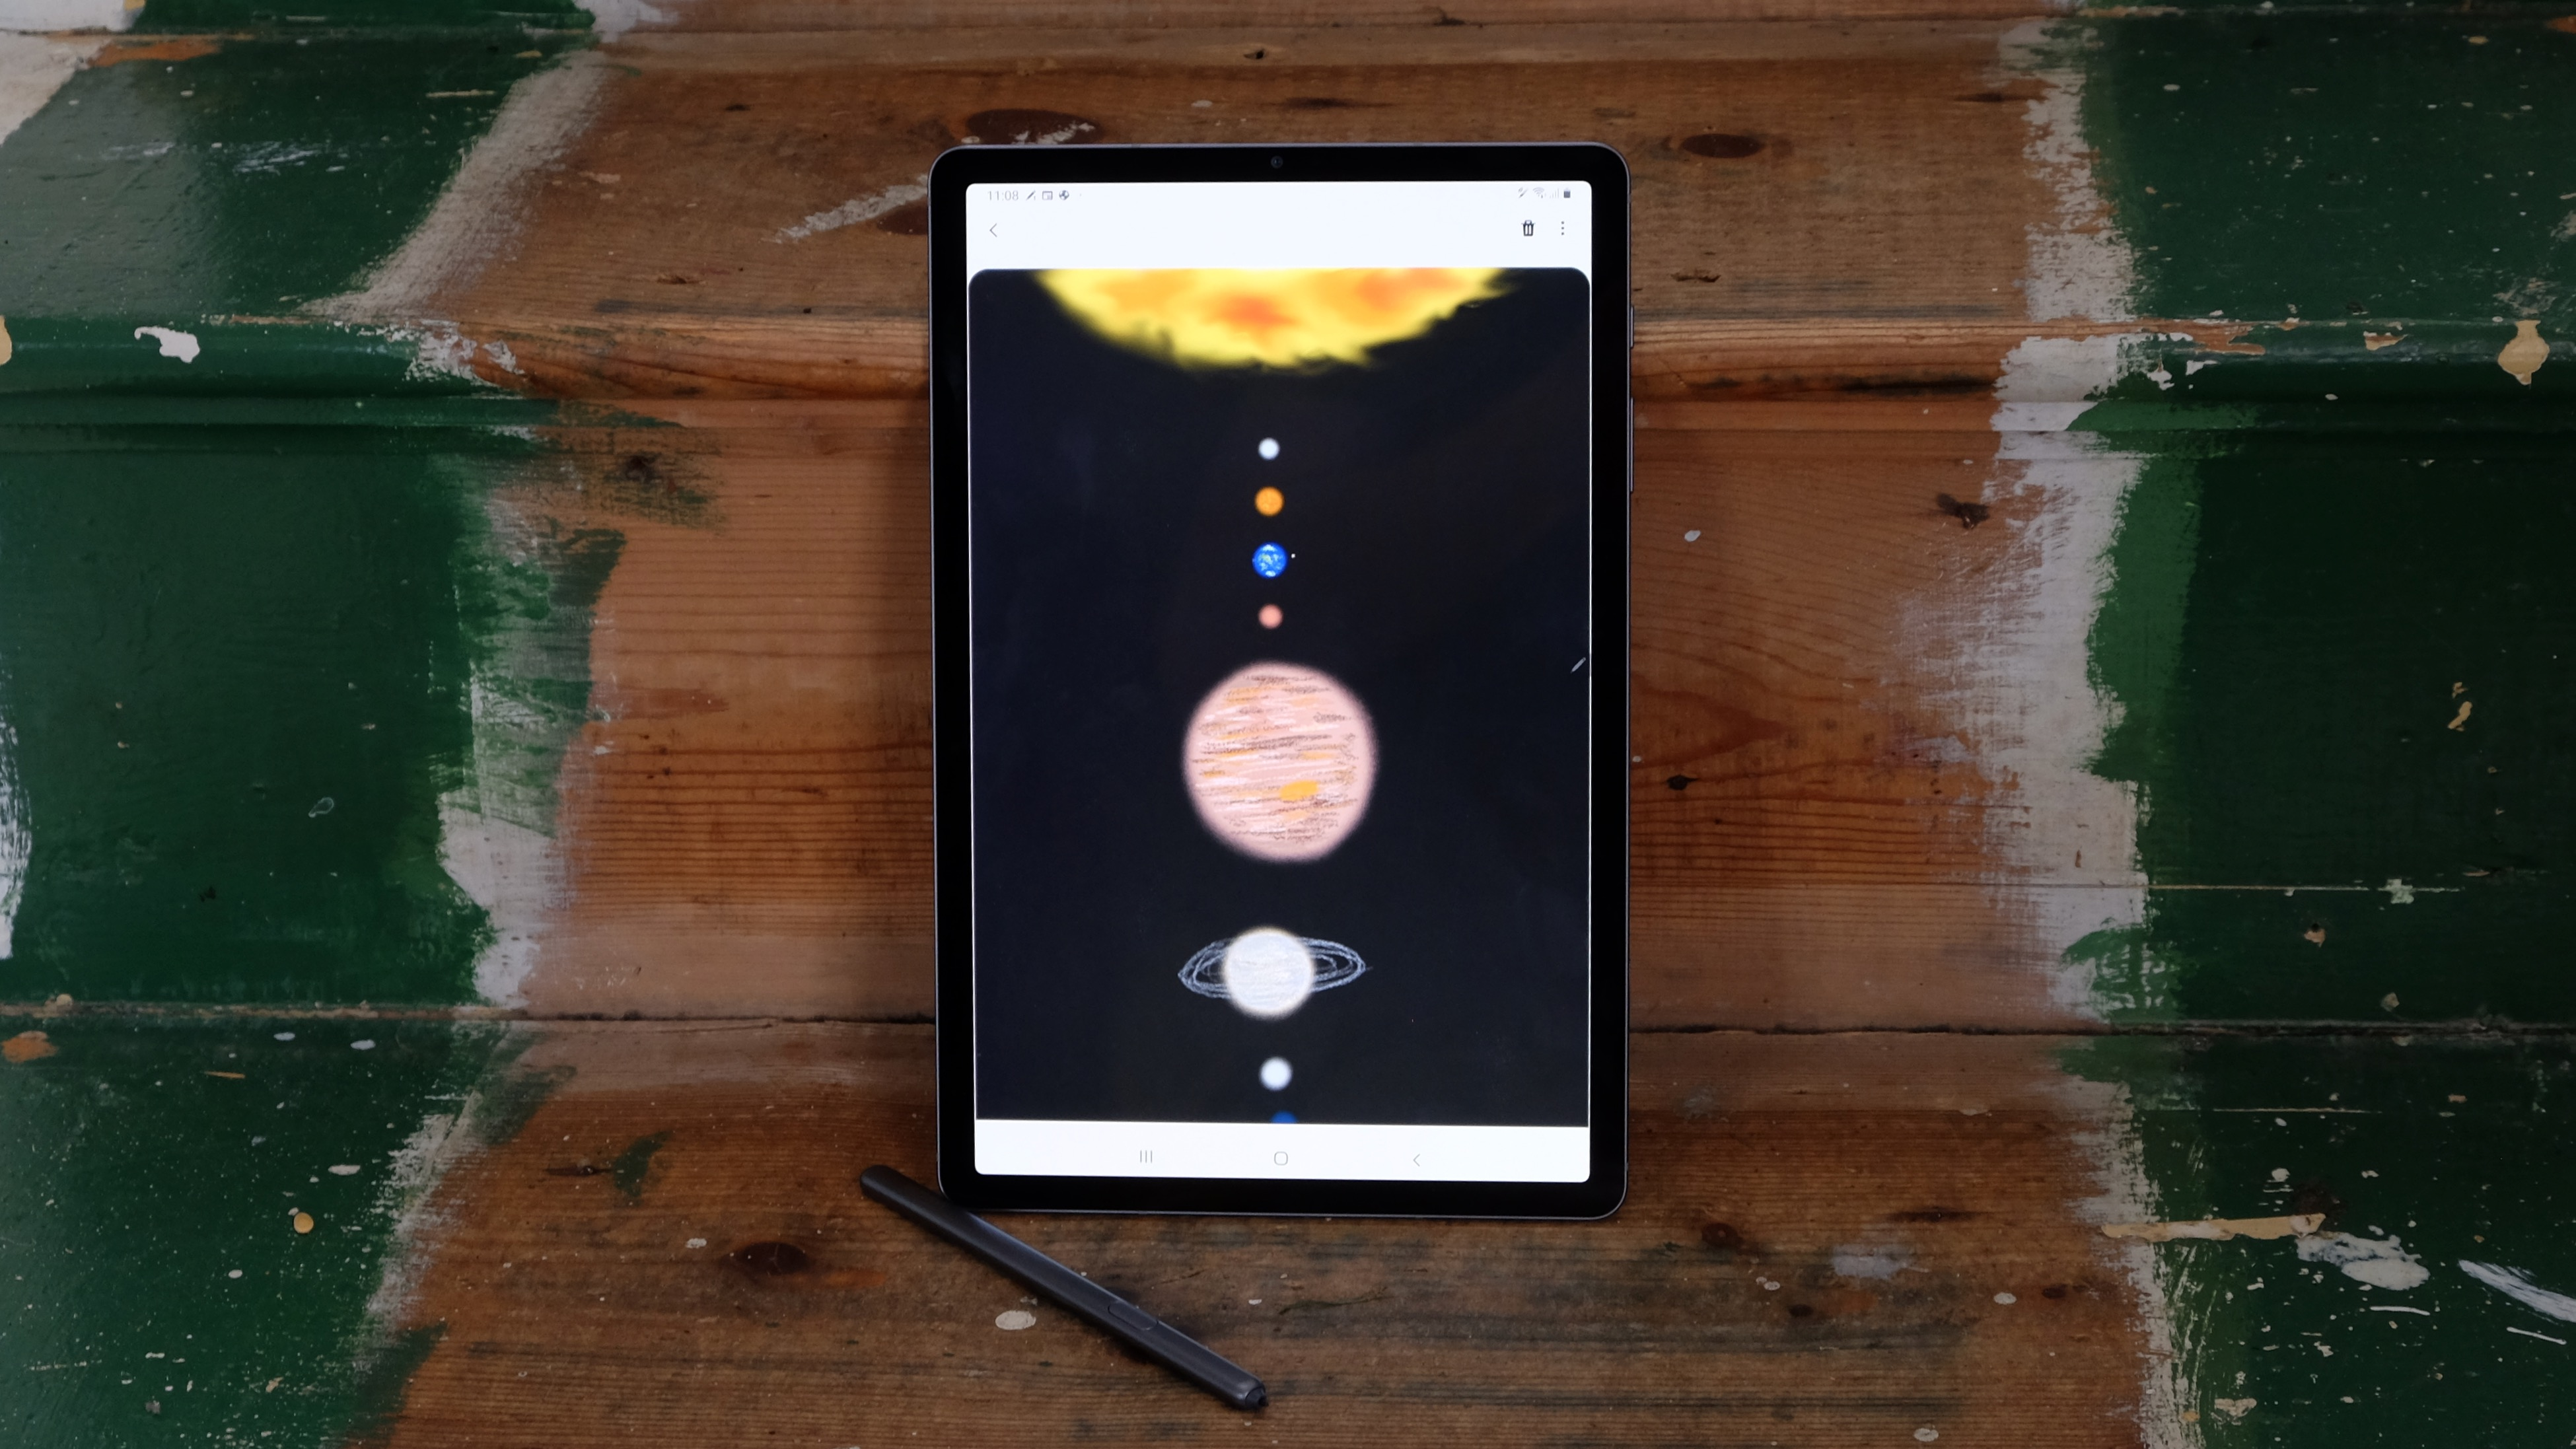 Samsung Galaxy Tab S6 Lite specs and price leak suggests it could rival the iPad